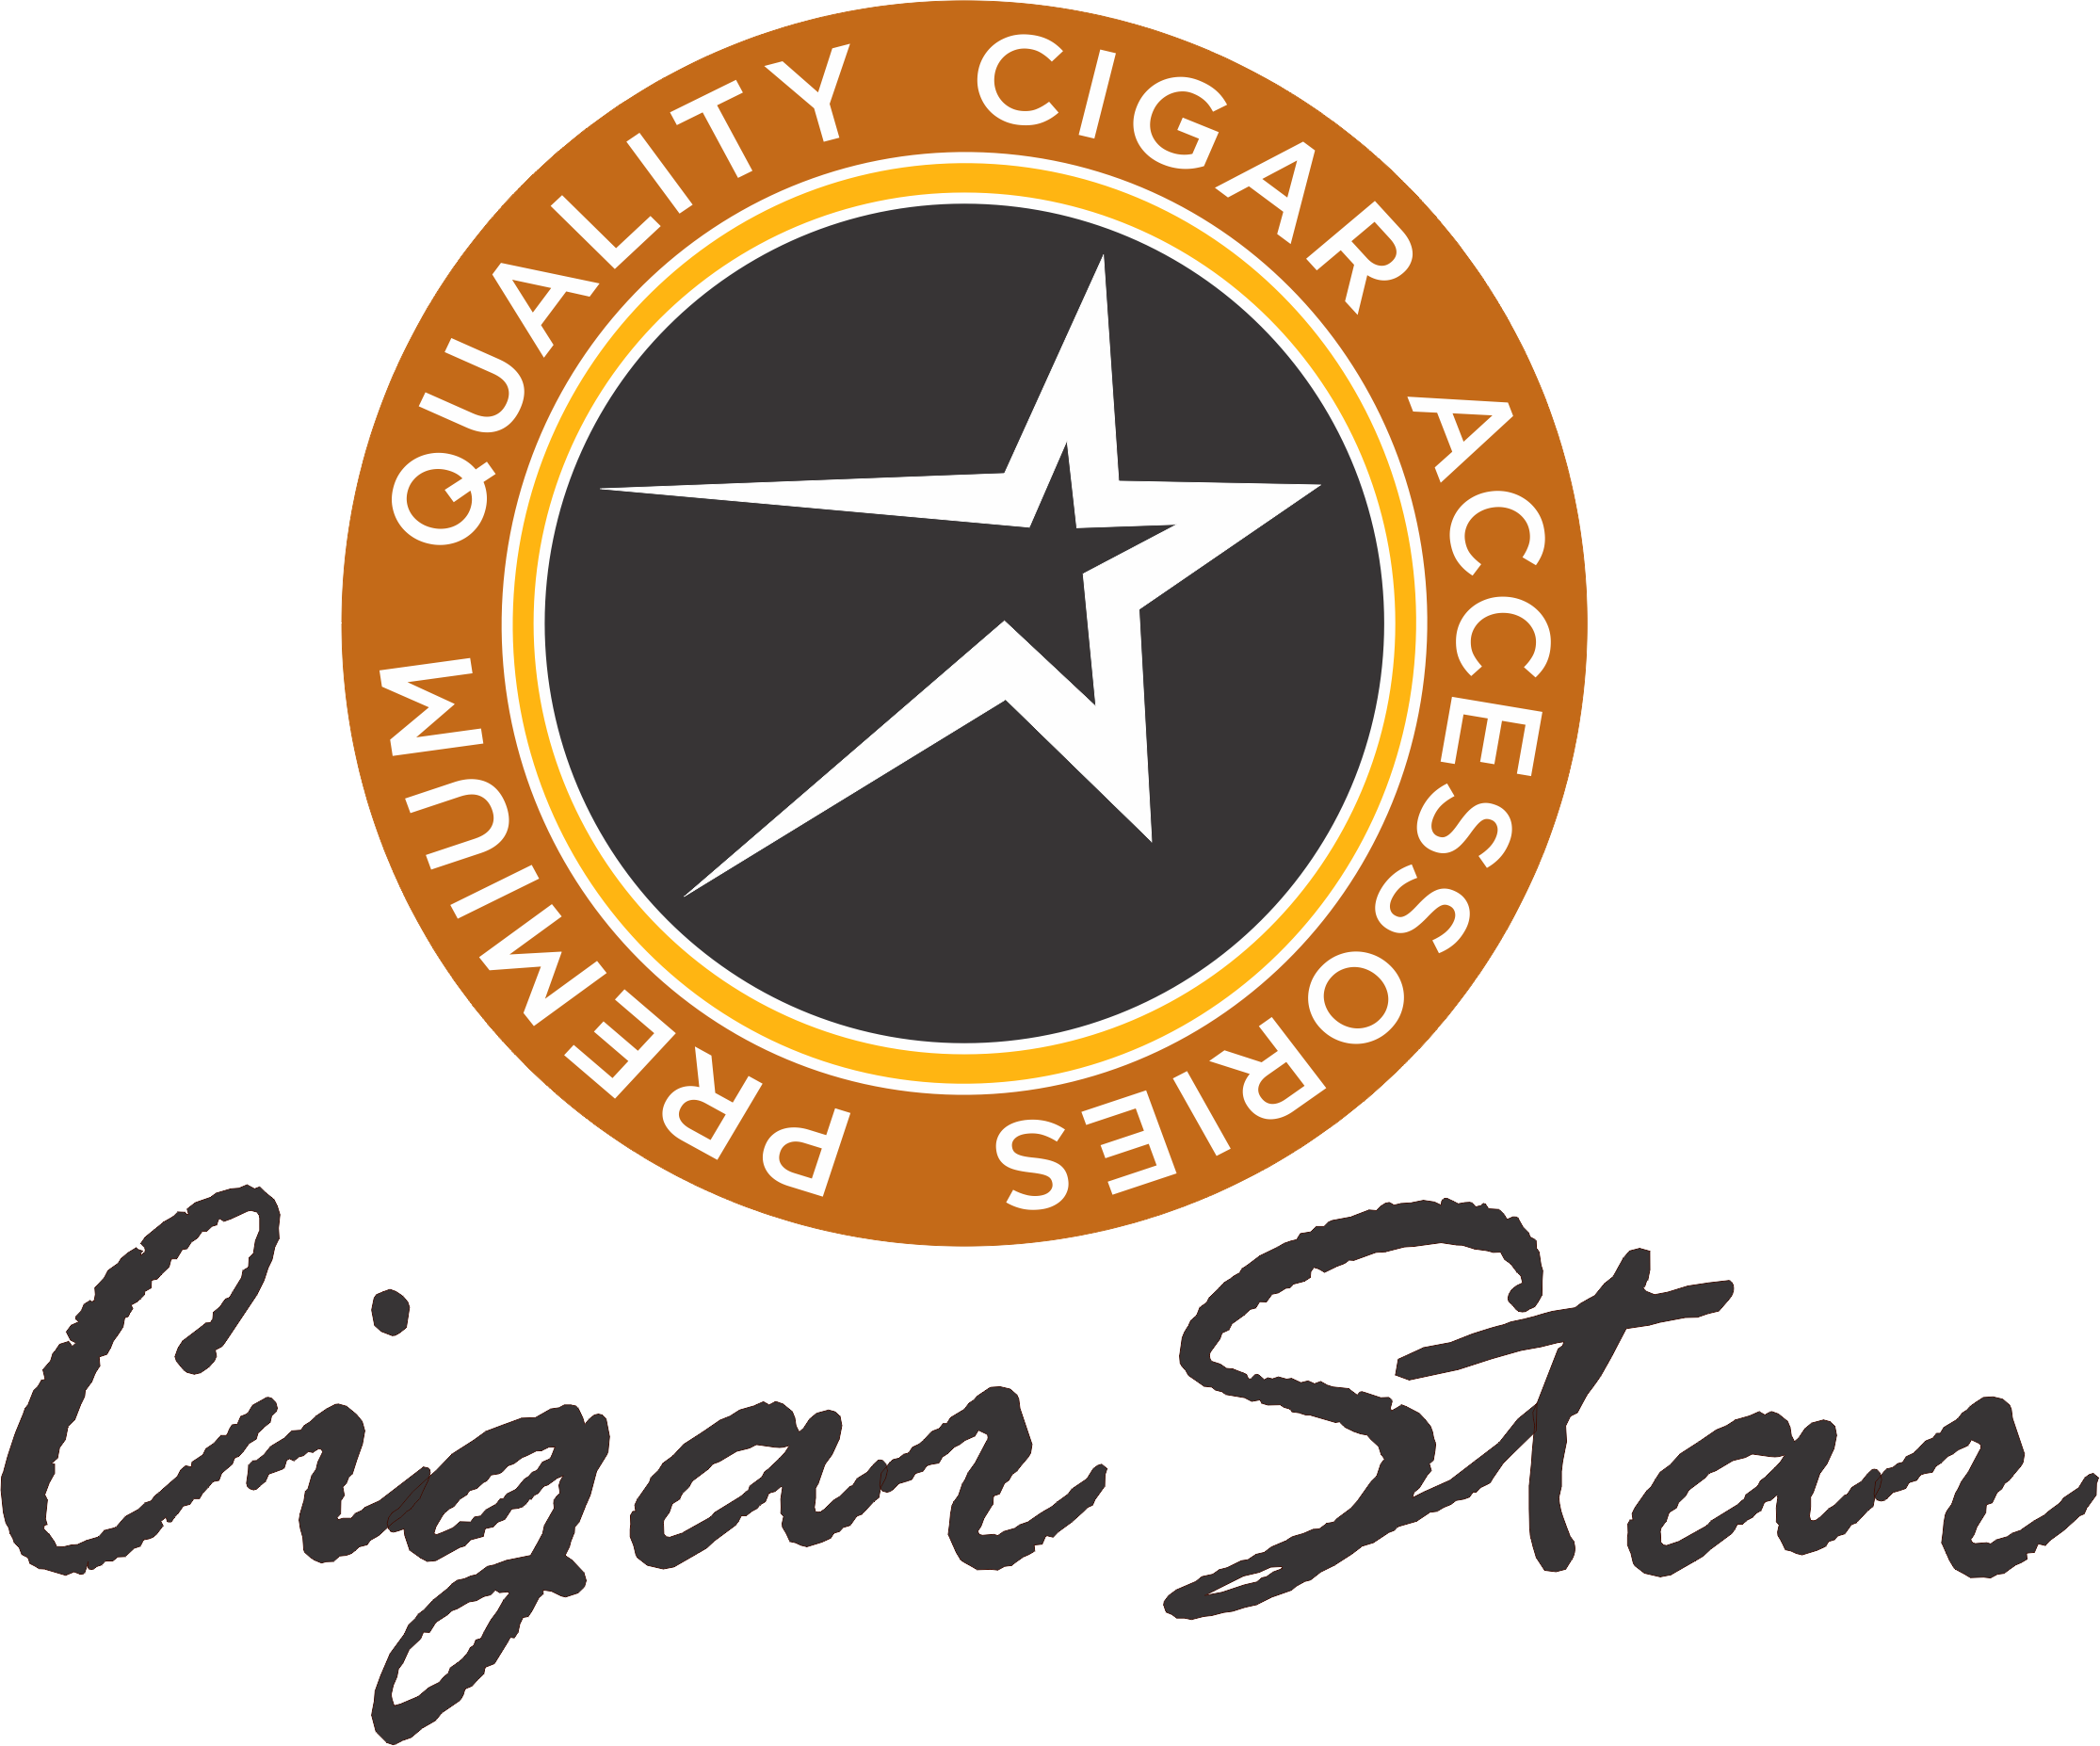 Cigar Star Coupon Code & Deals 2018